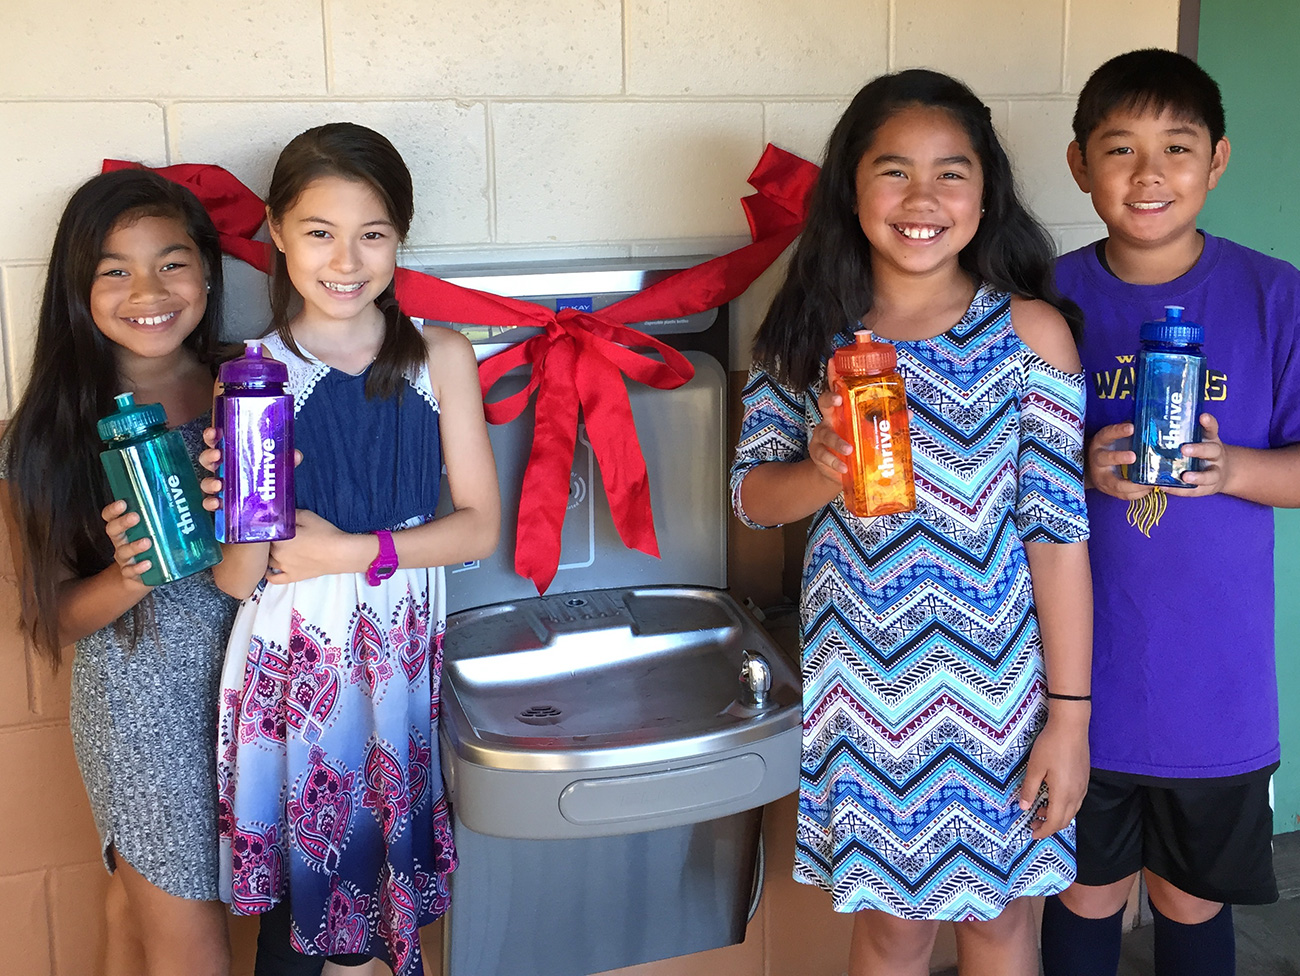 Students at Waihee Elementary School enjoy new water bottle filling stations.